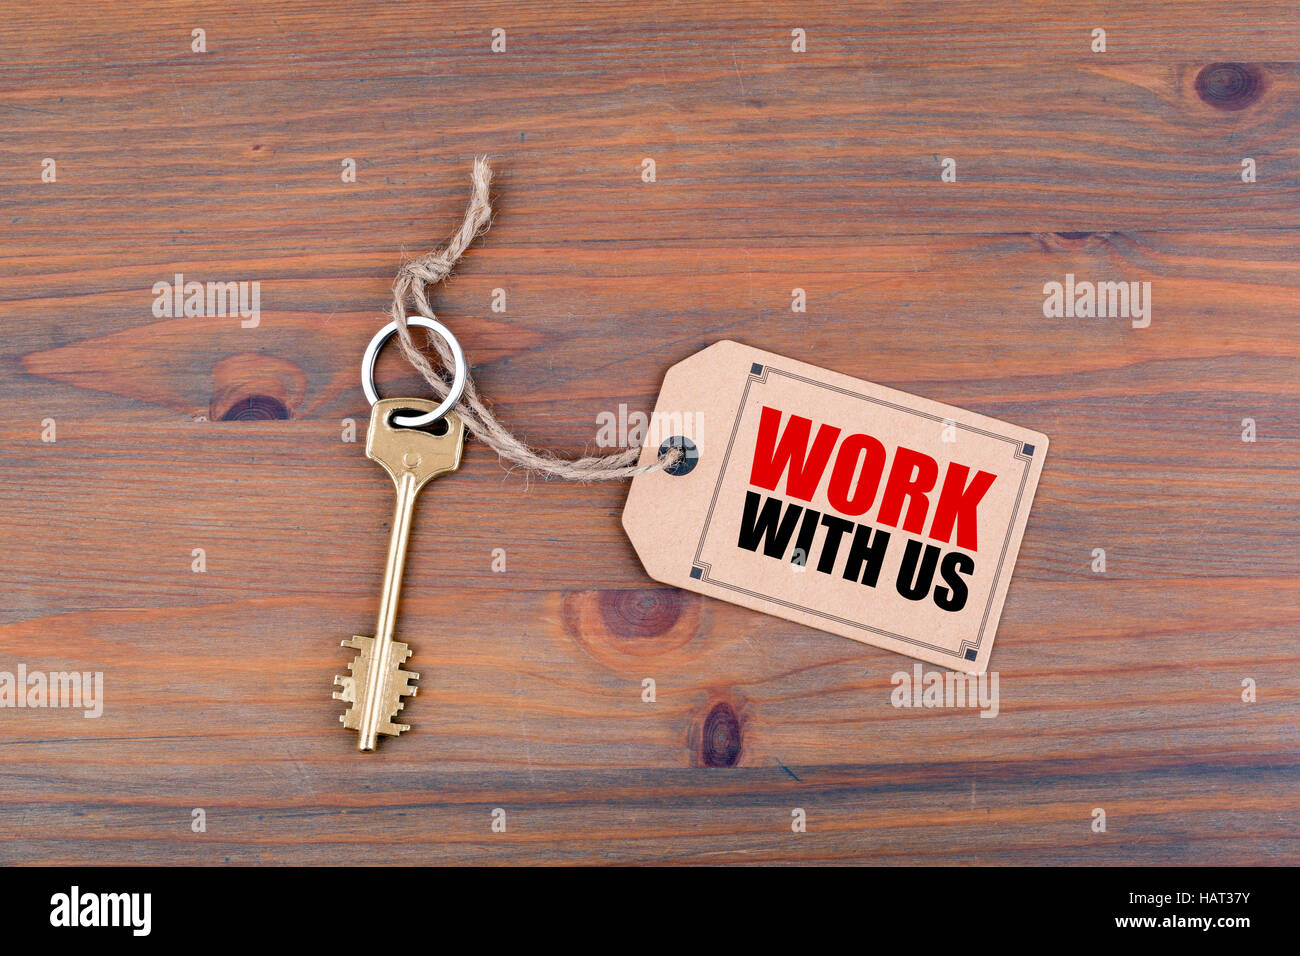 Key and a note with text - Work with us. - Stock Image